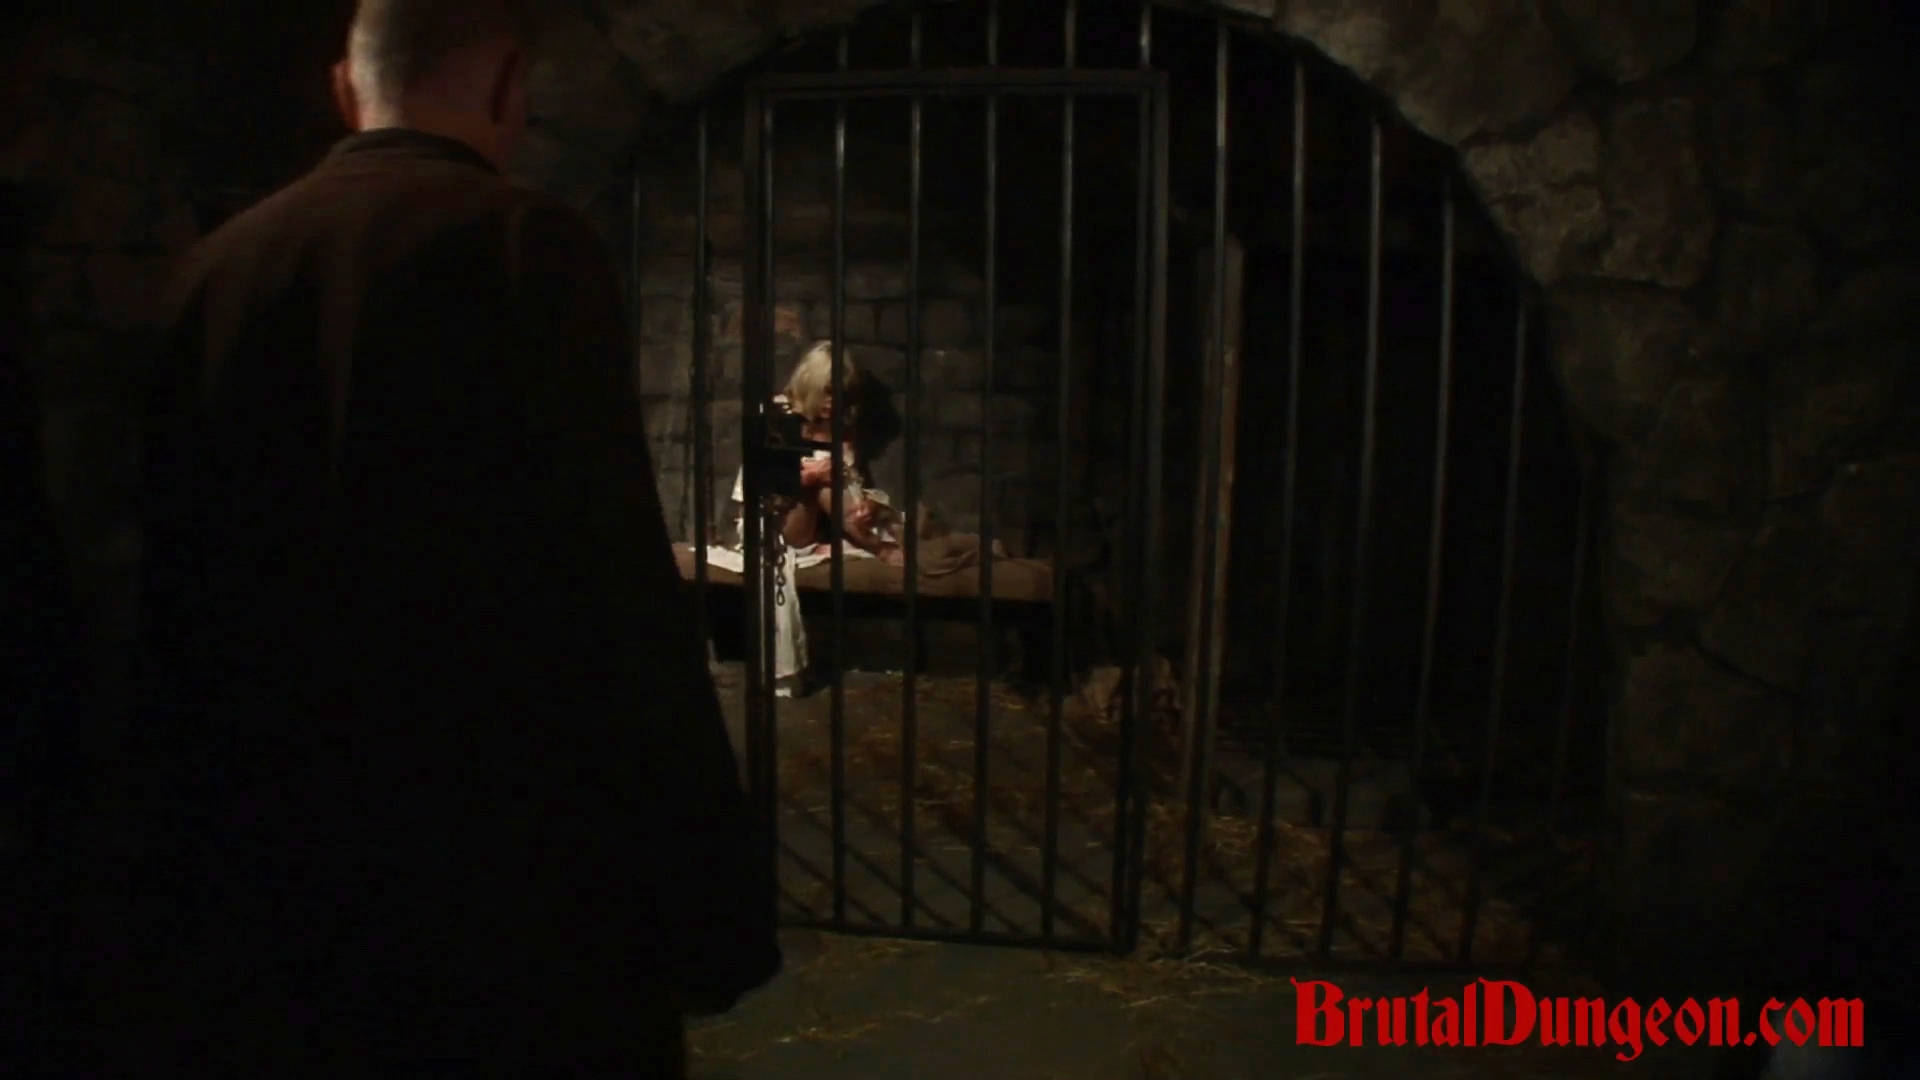 Bdsm gangbangs are just how the beatiful blonde amalia serves her prison sentence. In our dungeon, a young blonde is left begging for a second chance. She is denied and must endure imprisonment, bondage, domination, BDSM fun, gang bang, spanking, fingering, tit, nipple and kitty torment.